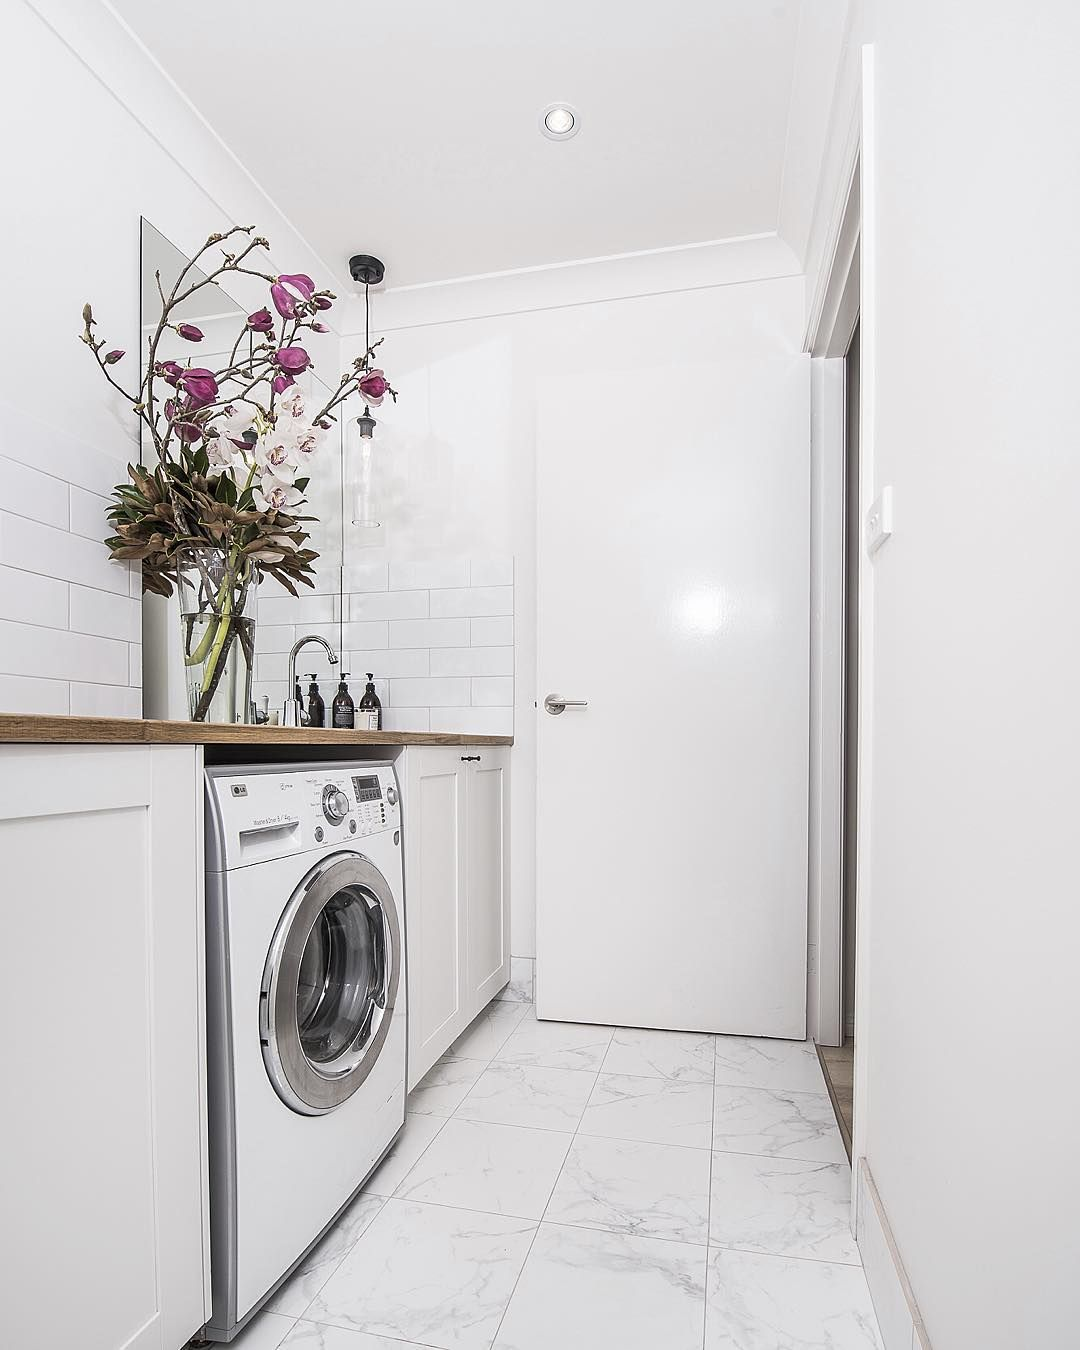 Bunnings Bathroom Vanity Downstairs Powder Room Laundry In This House We Used The Same